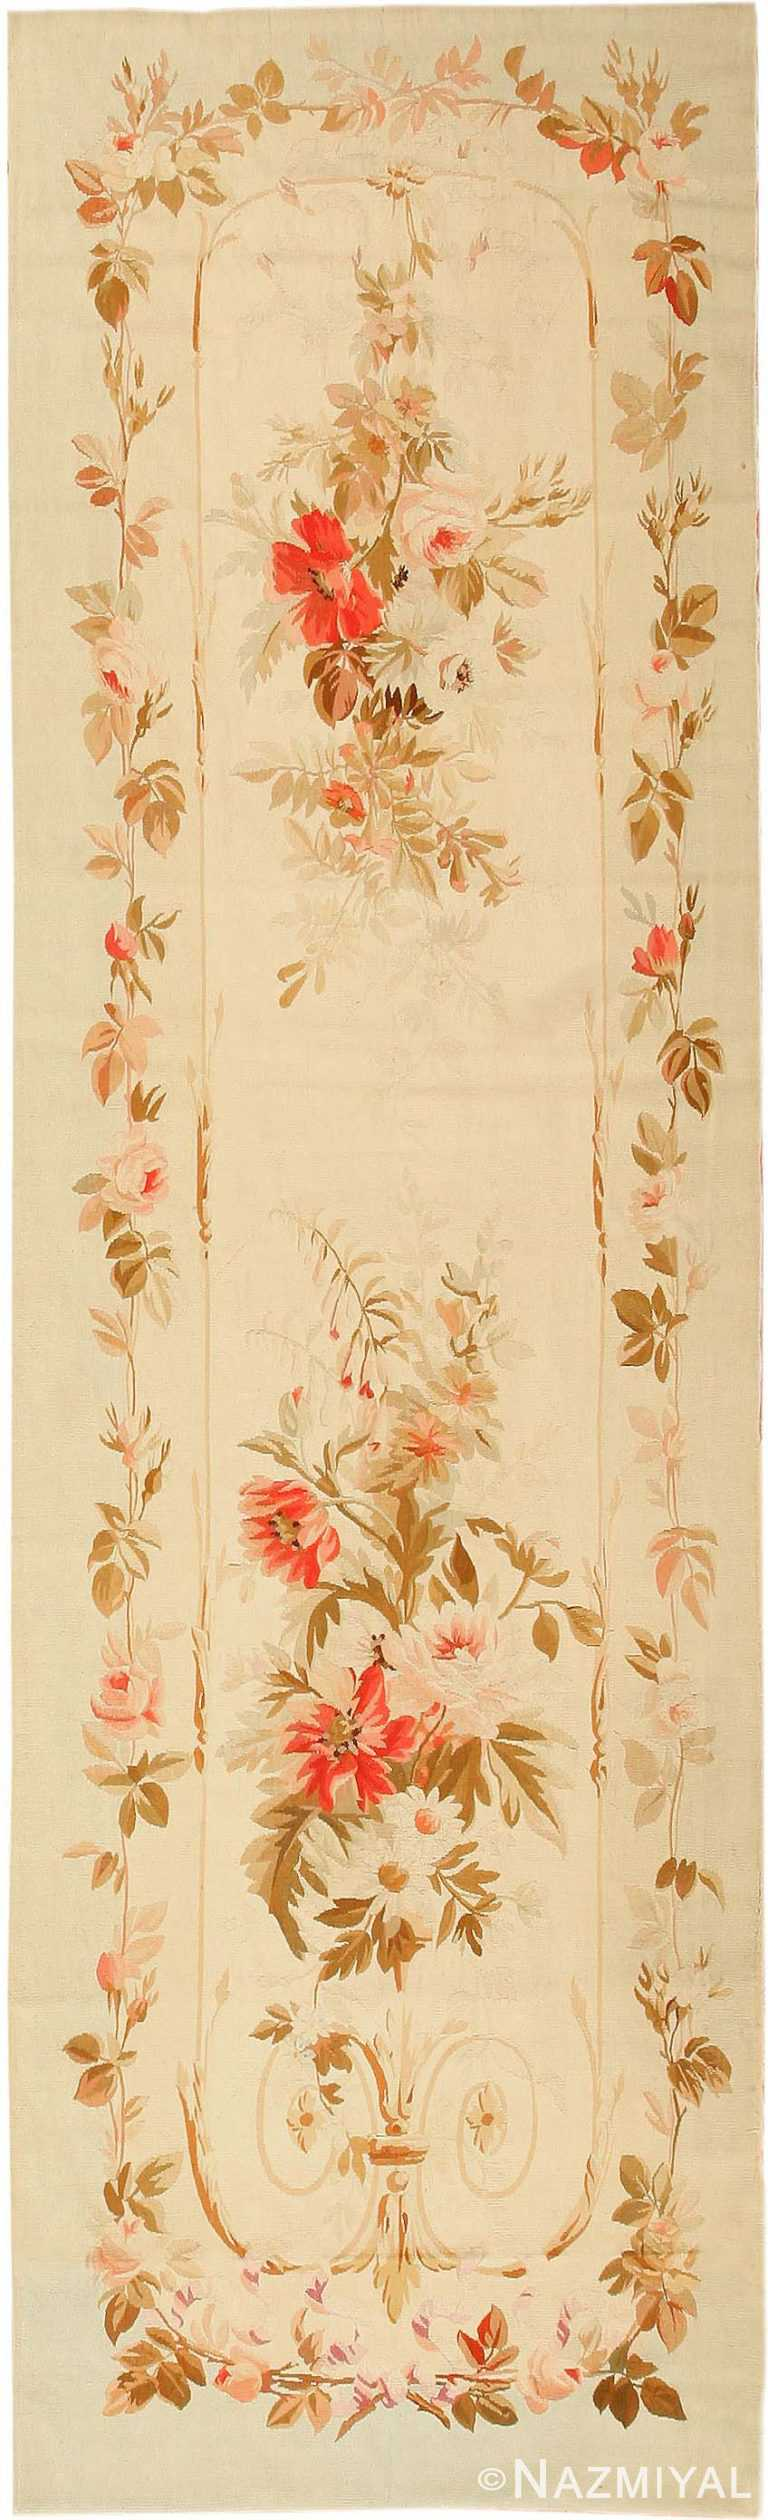 Antique French Aubusson Runner Rug 2855 by Nazmiyal